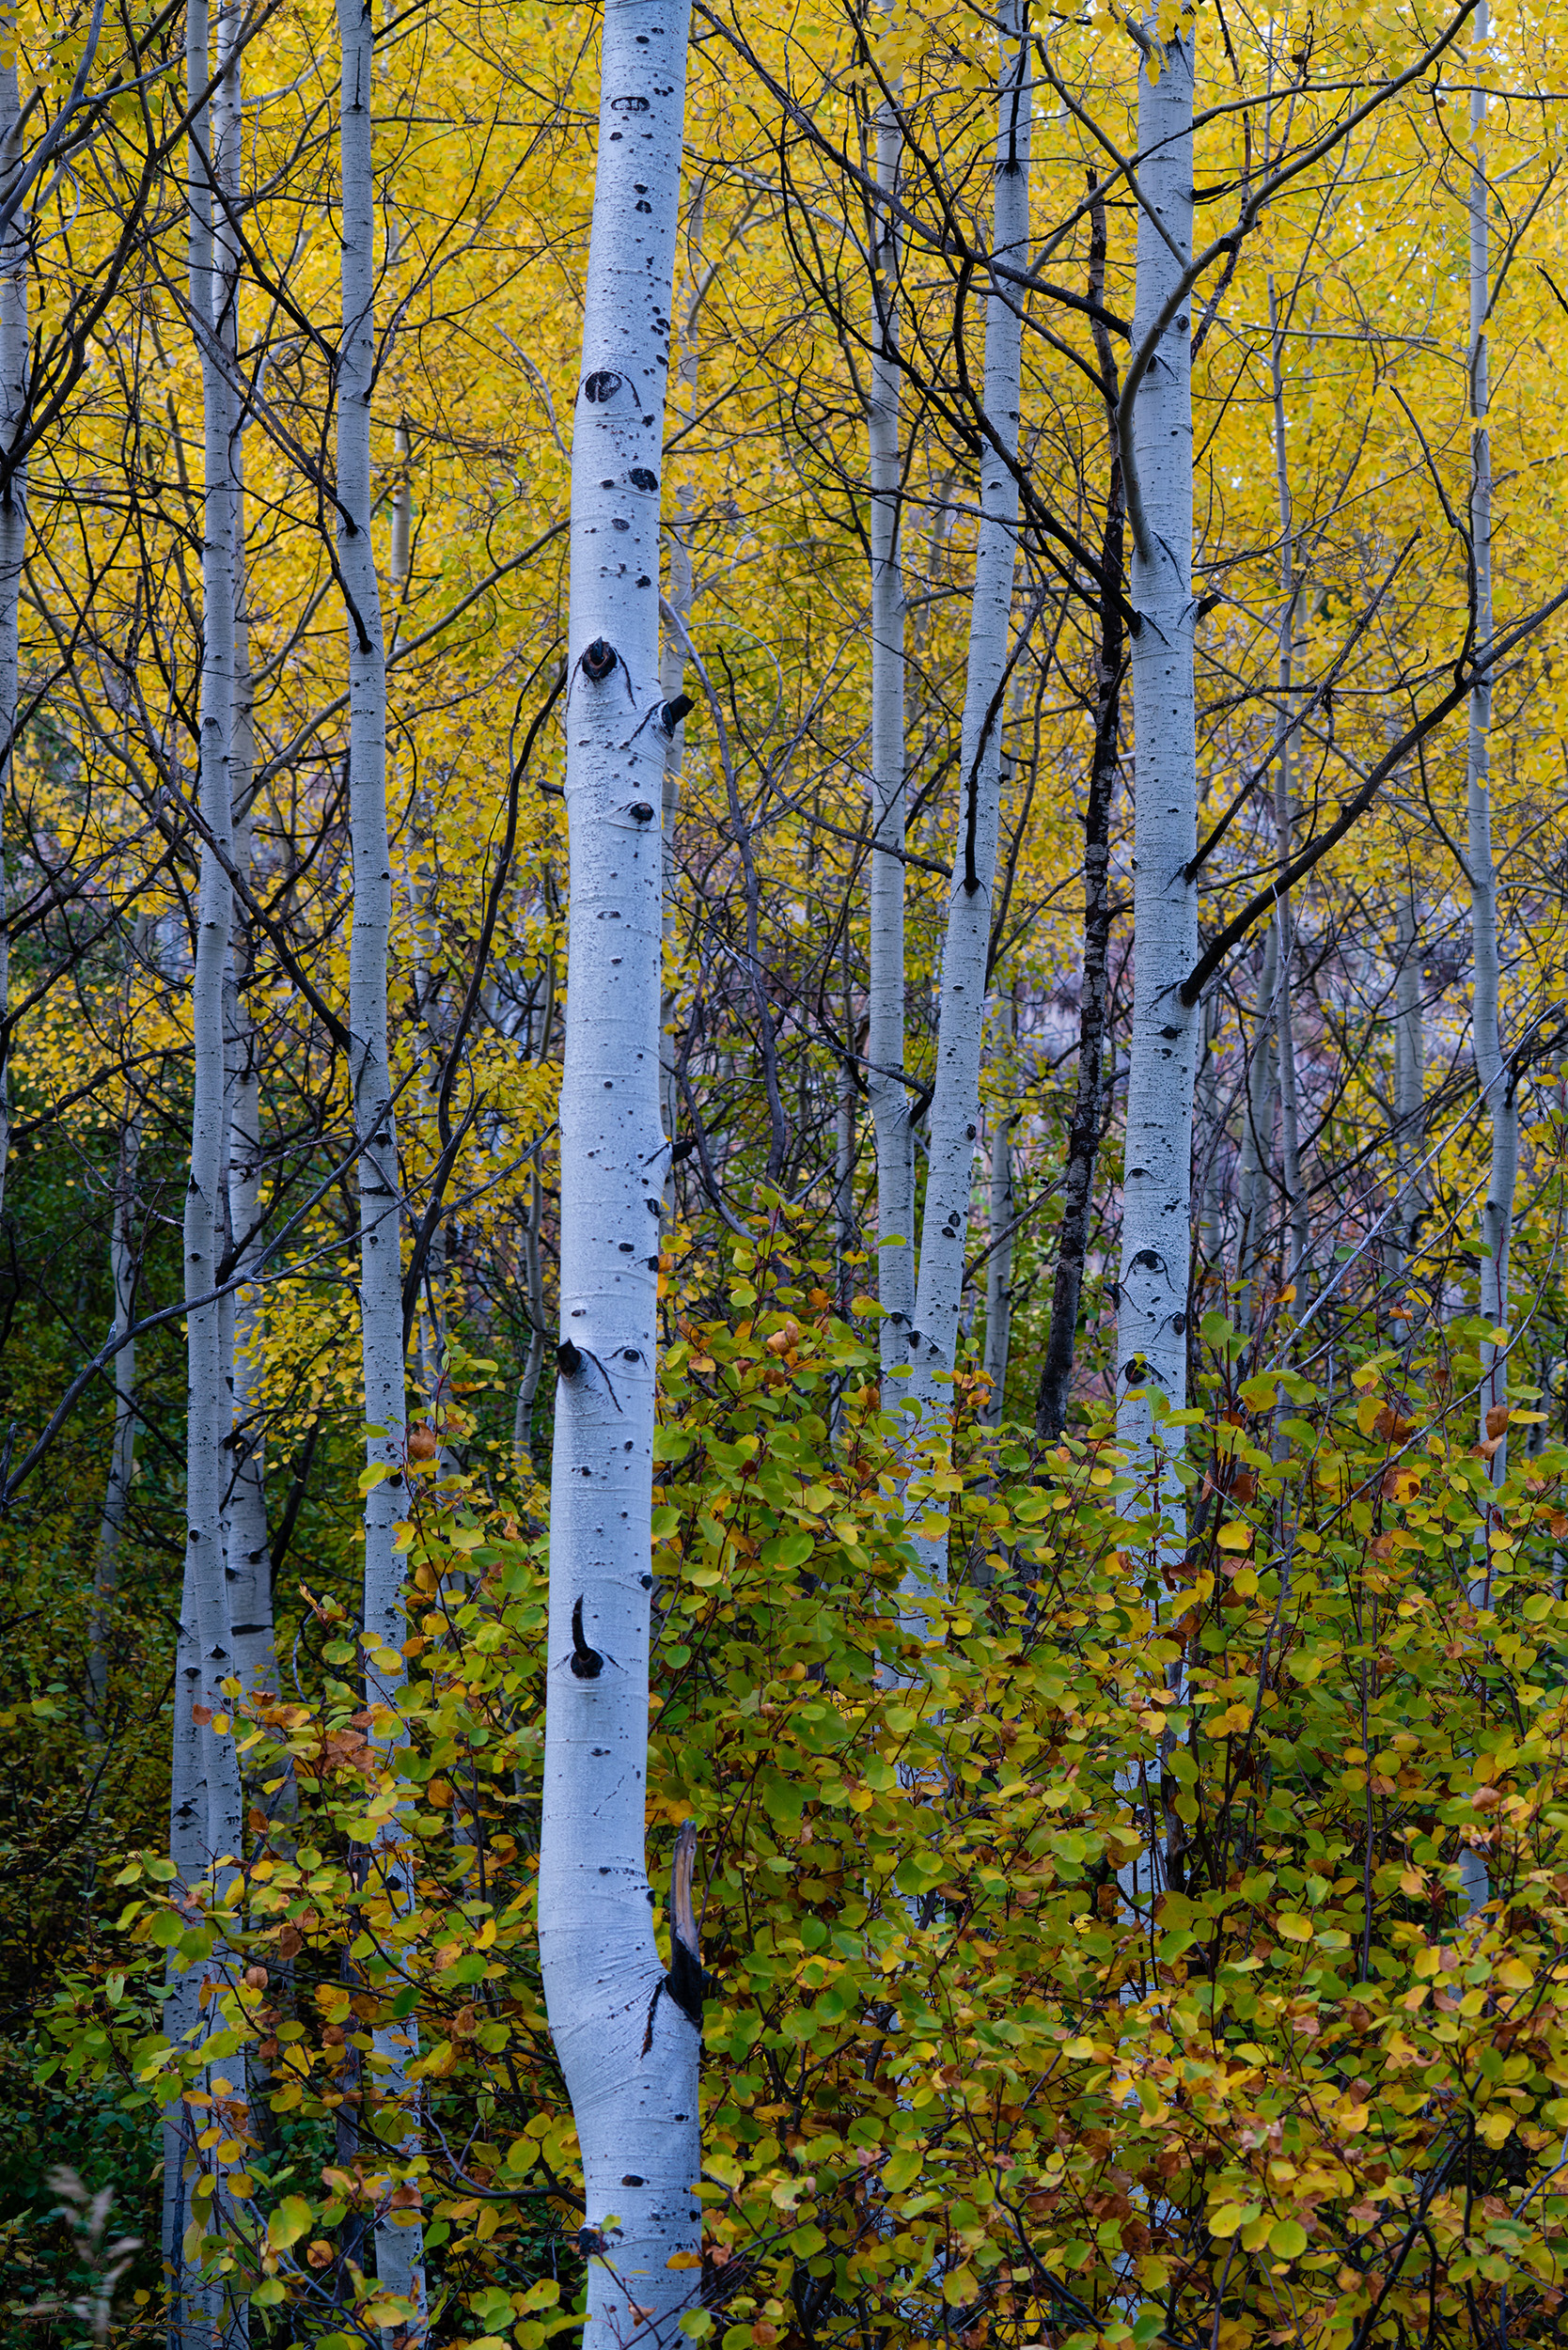 #aspens, #aspen, #trees, #vertical, #trunks, #whitetrunks, #forest, #clone, #yellow, #fallcolor, #pattern